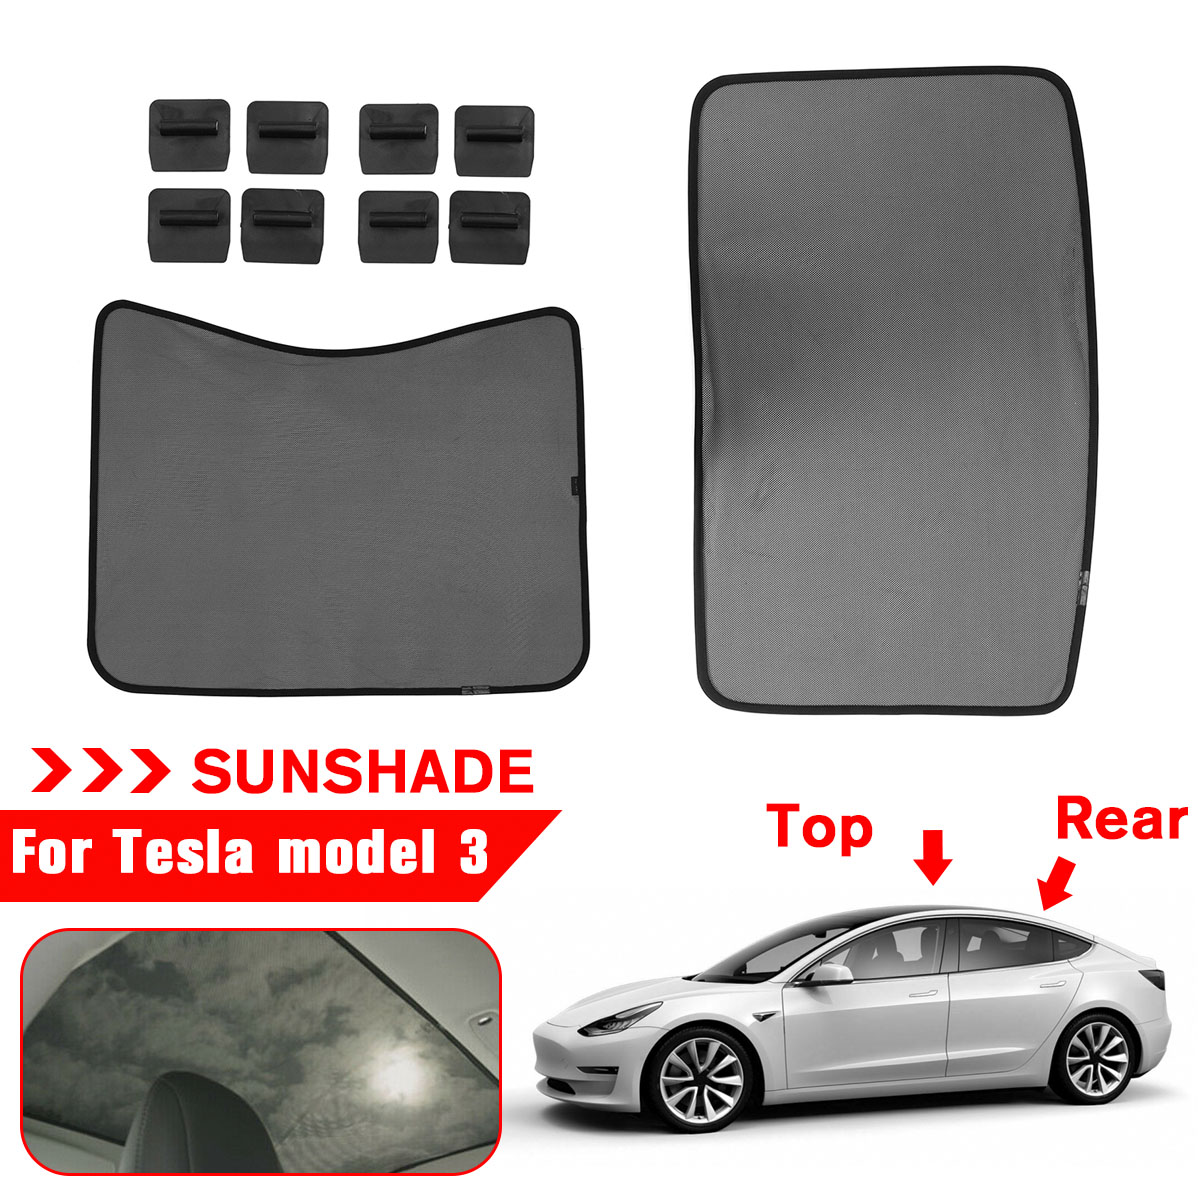 Car Mesh Front Rear Sunshade Cover for Tesla Model 3 Skylight Screen Shade Heat Insulation Roof